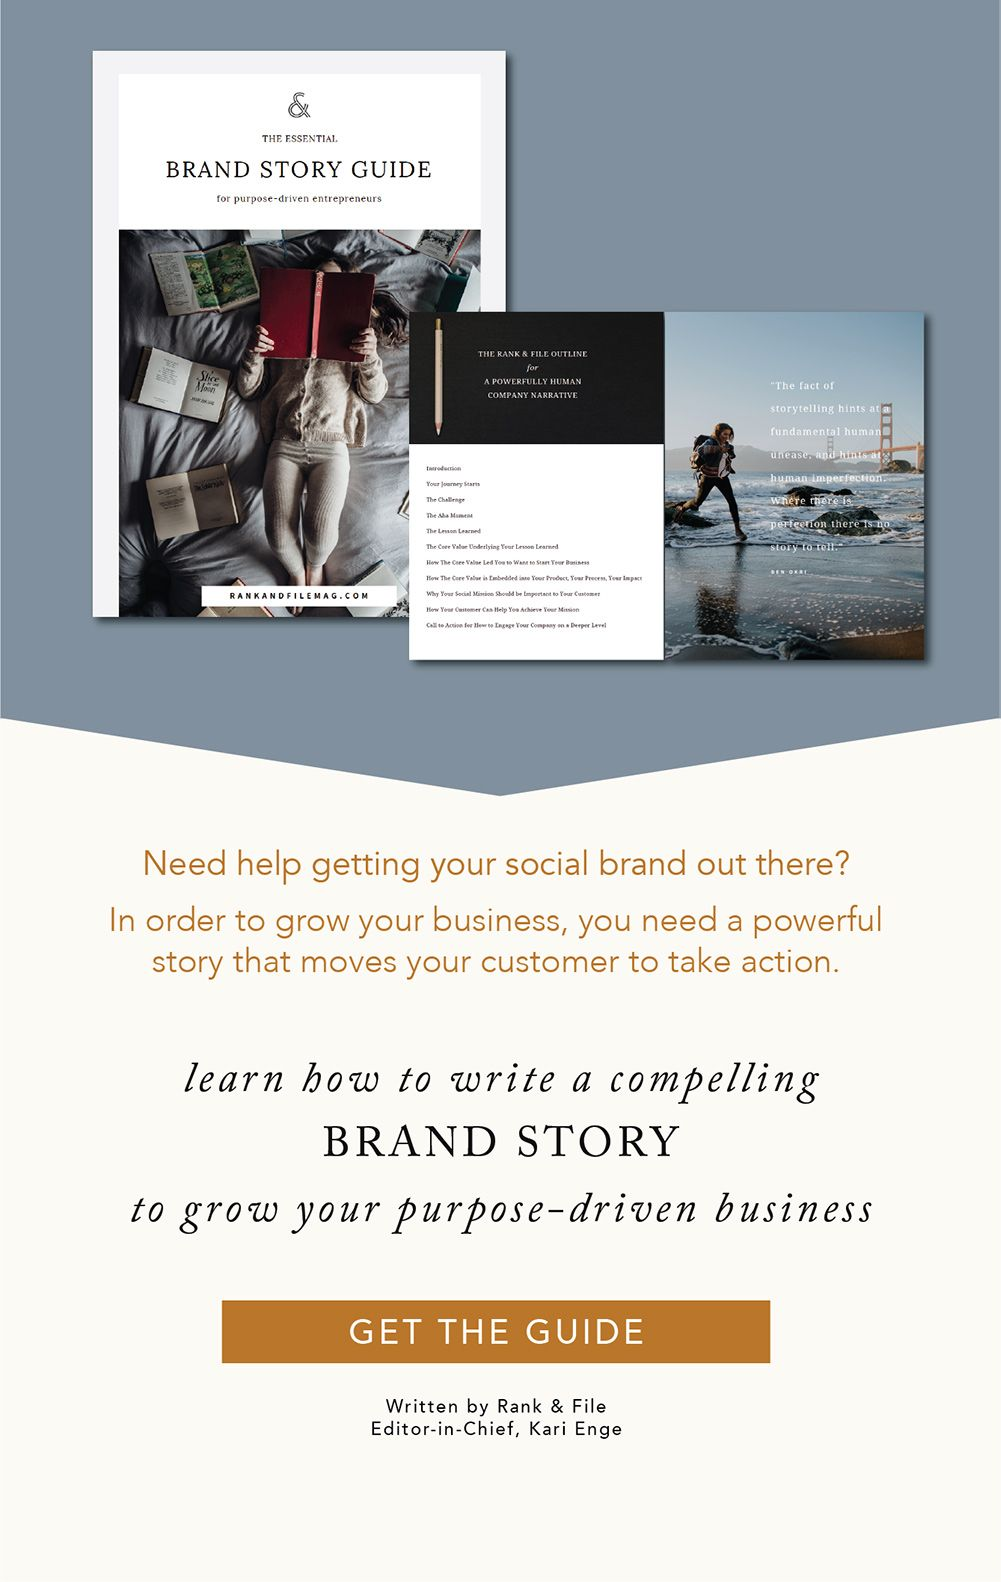 Essential Brand Story Guide for PurposeDriven